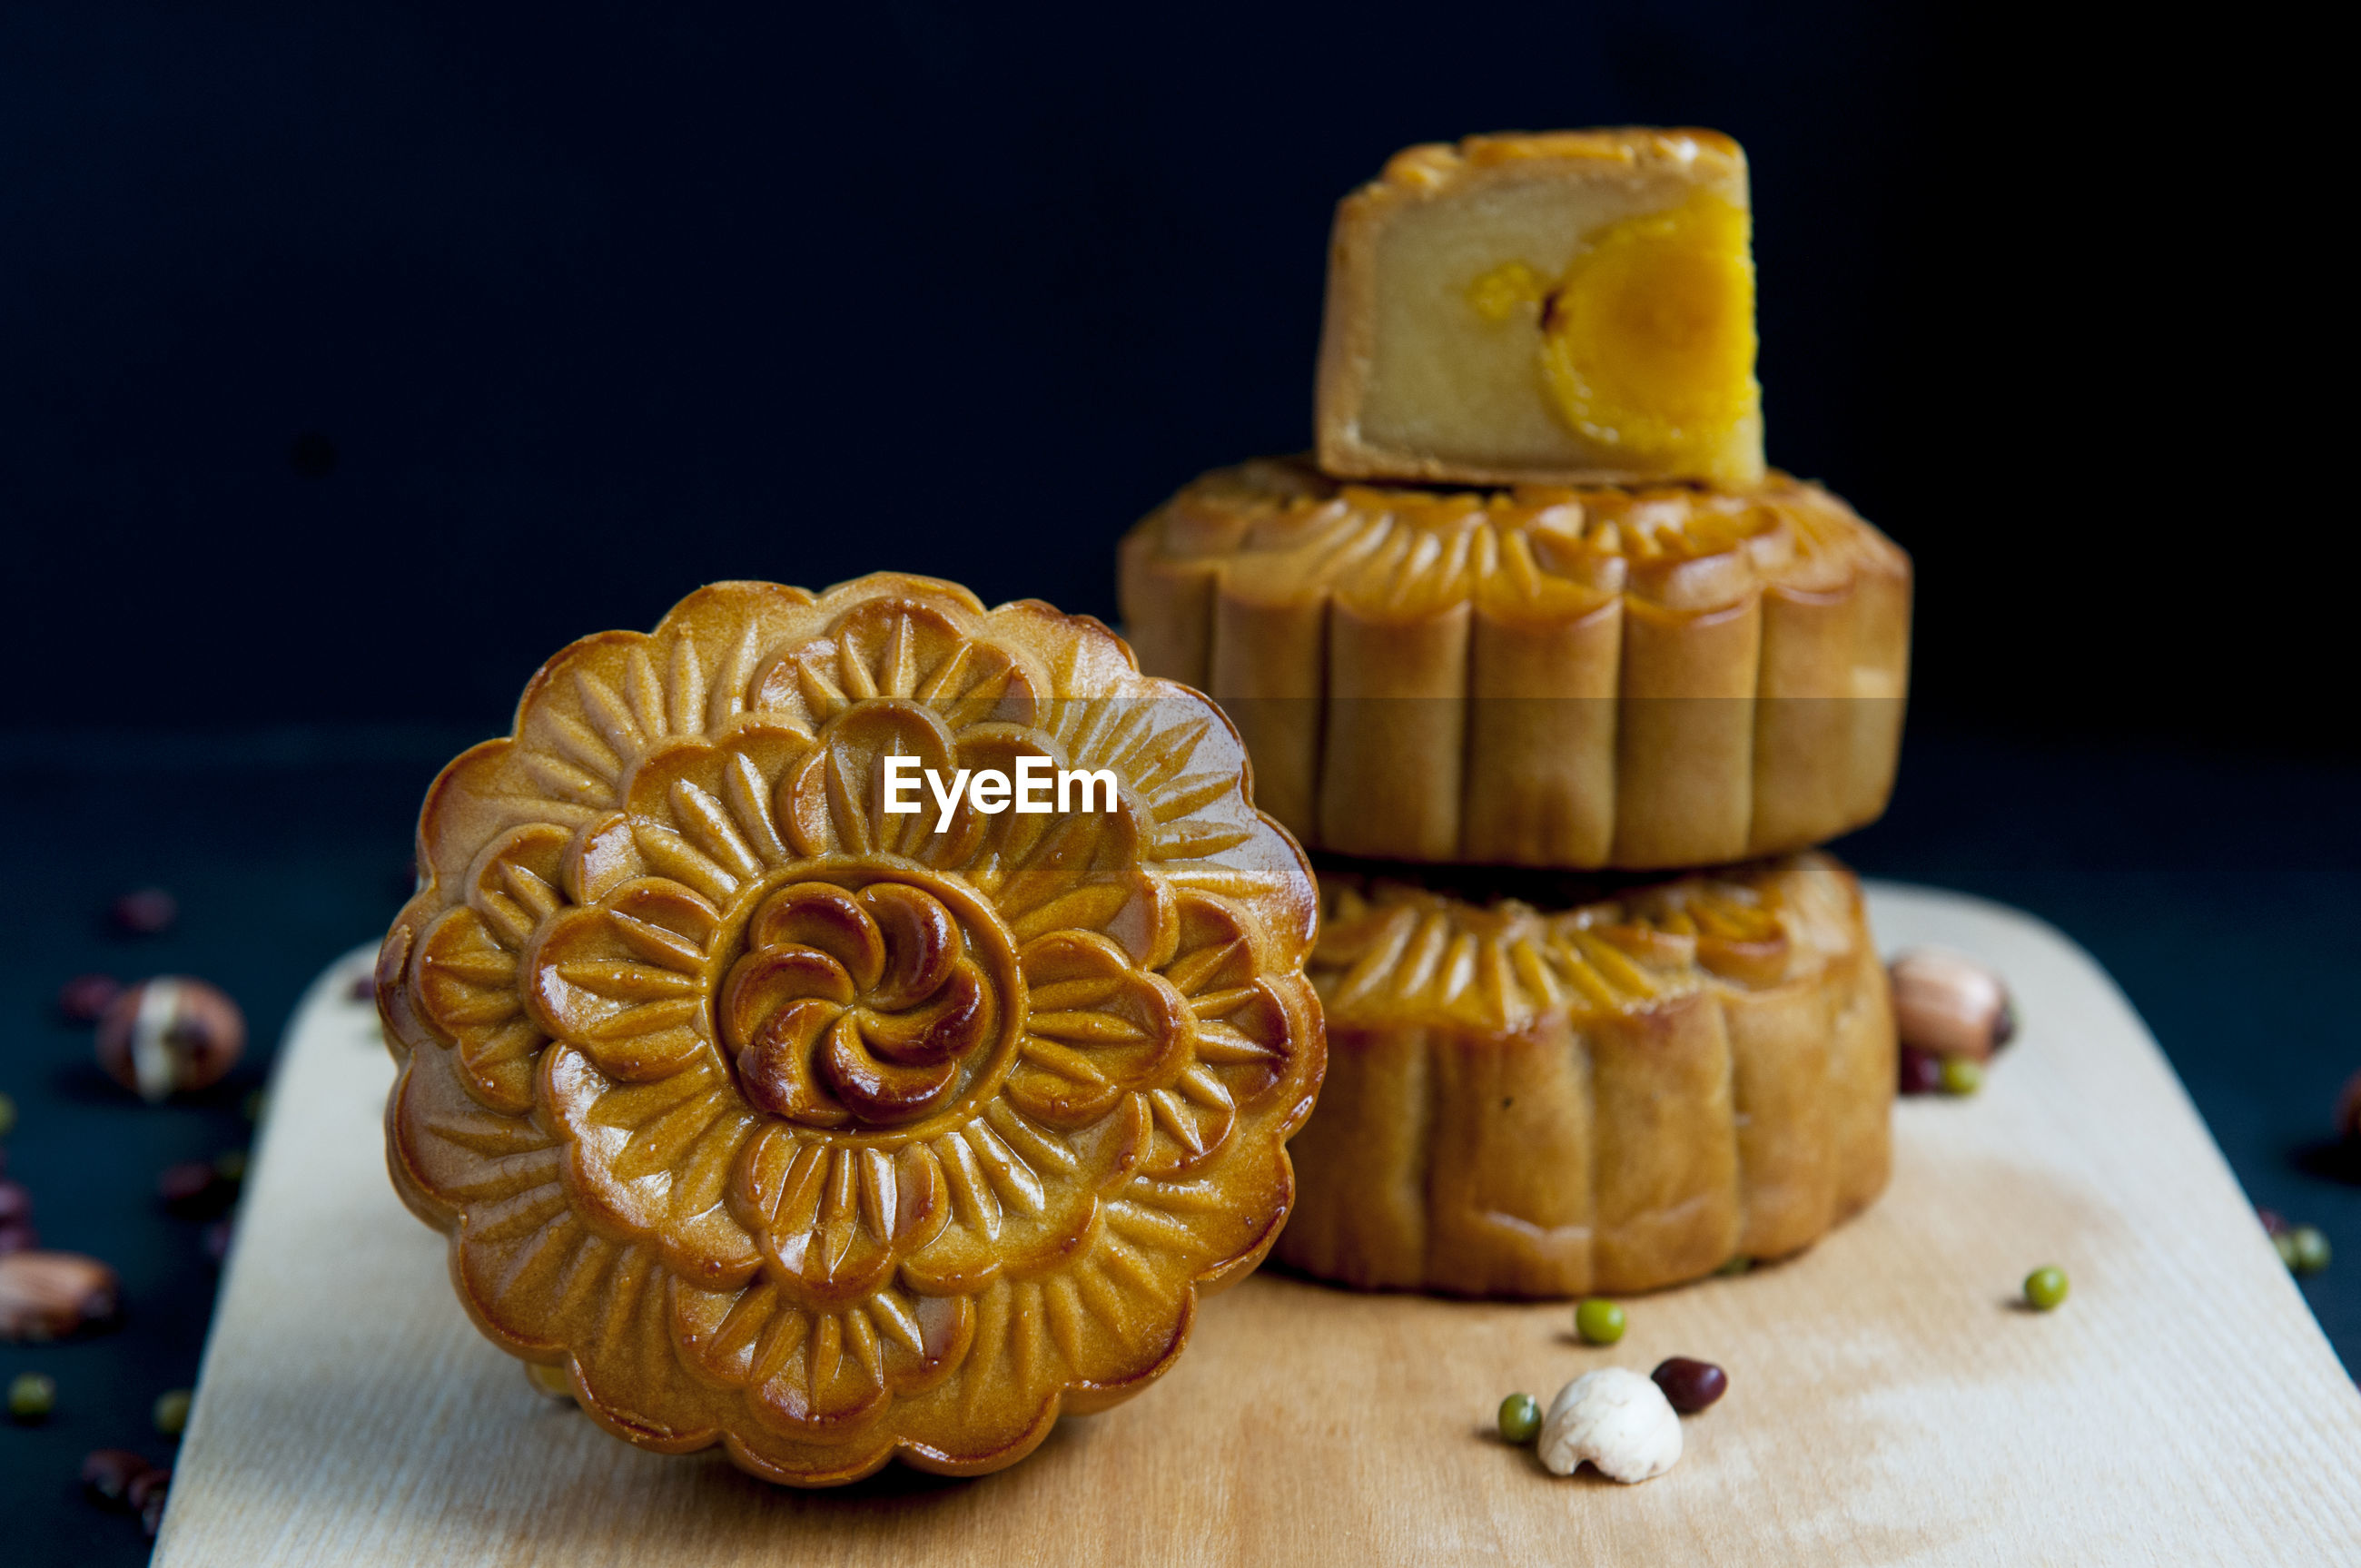 Close-up of moon cakes with seeds and serving board on table against black background